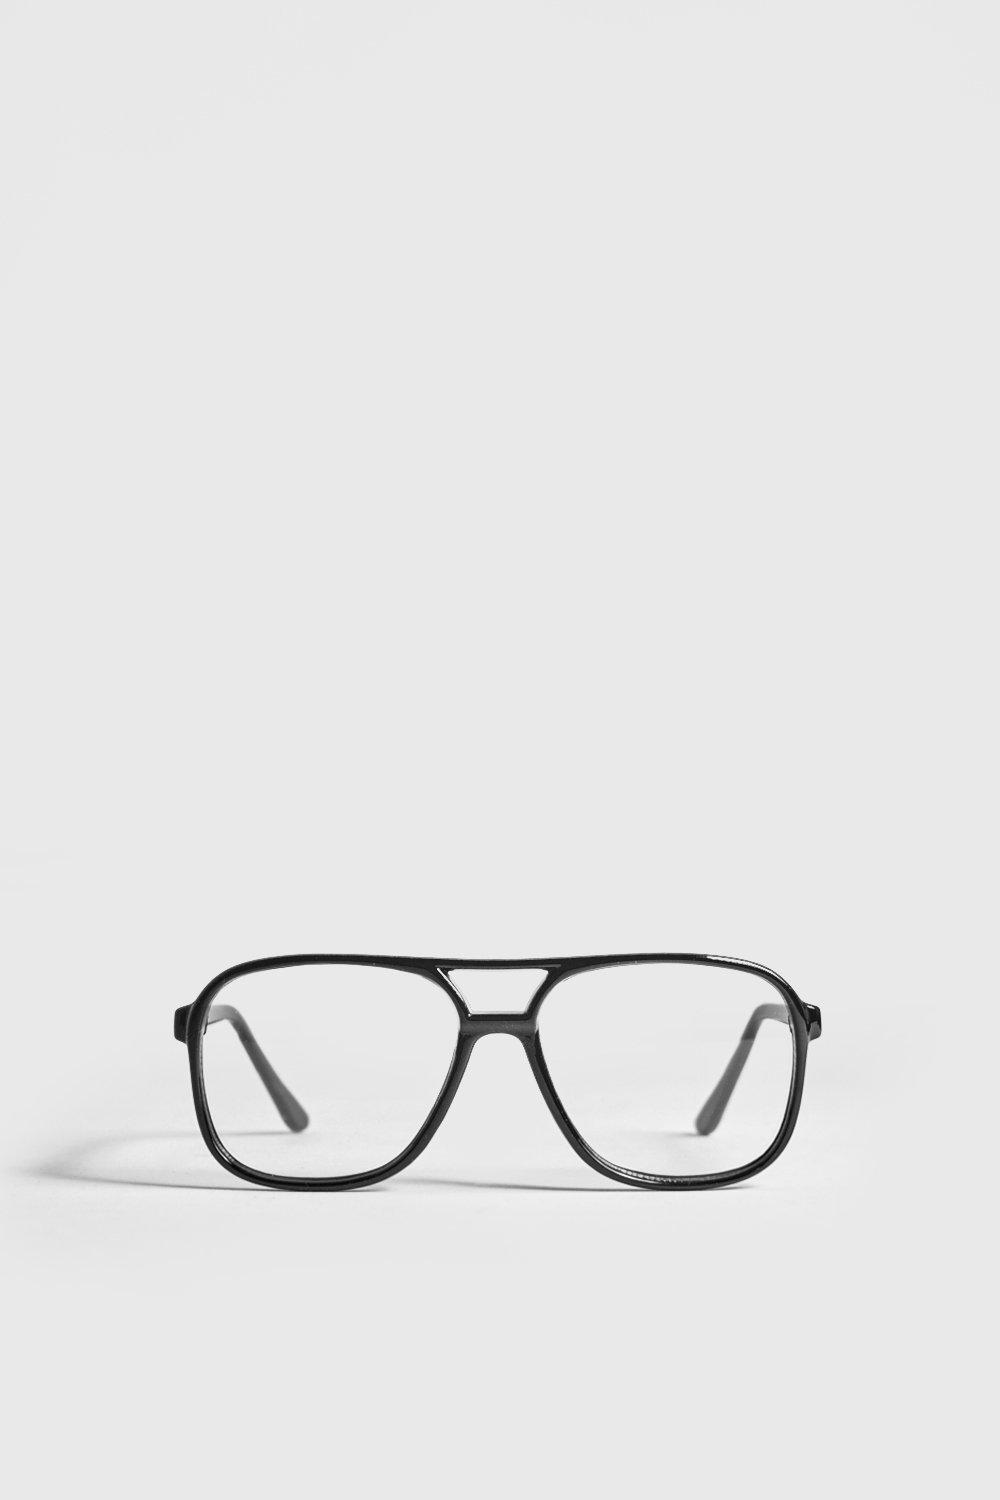 Clear Lens Geek Fashion Glasses